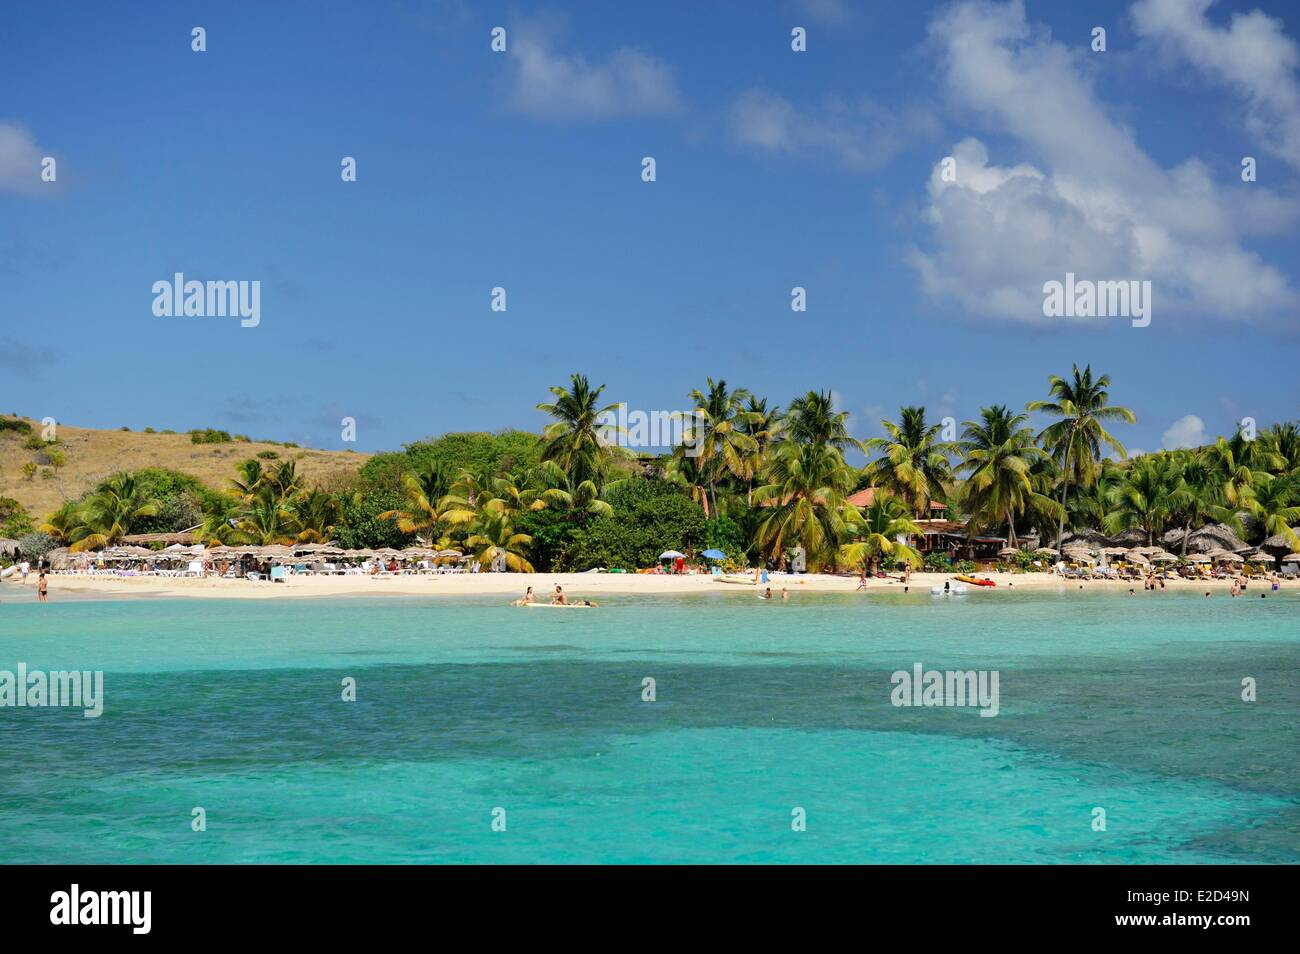 France Guadeloupe Saint Martin Cul de Sac Pinel Island exotic beach and its turquoise waters - Stock Image